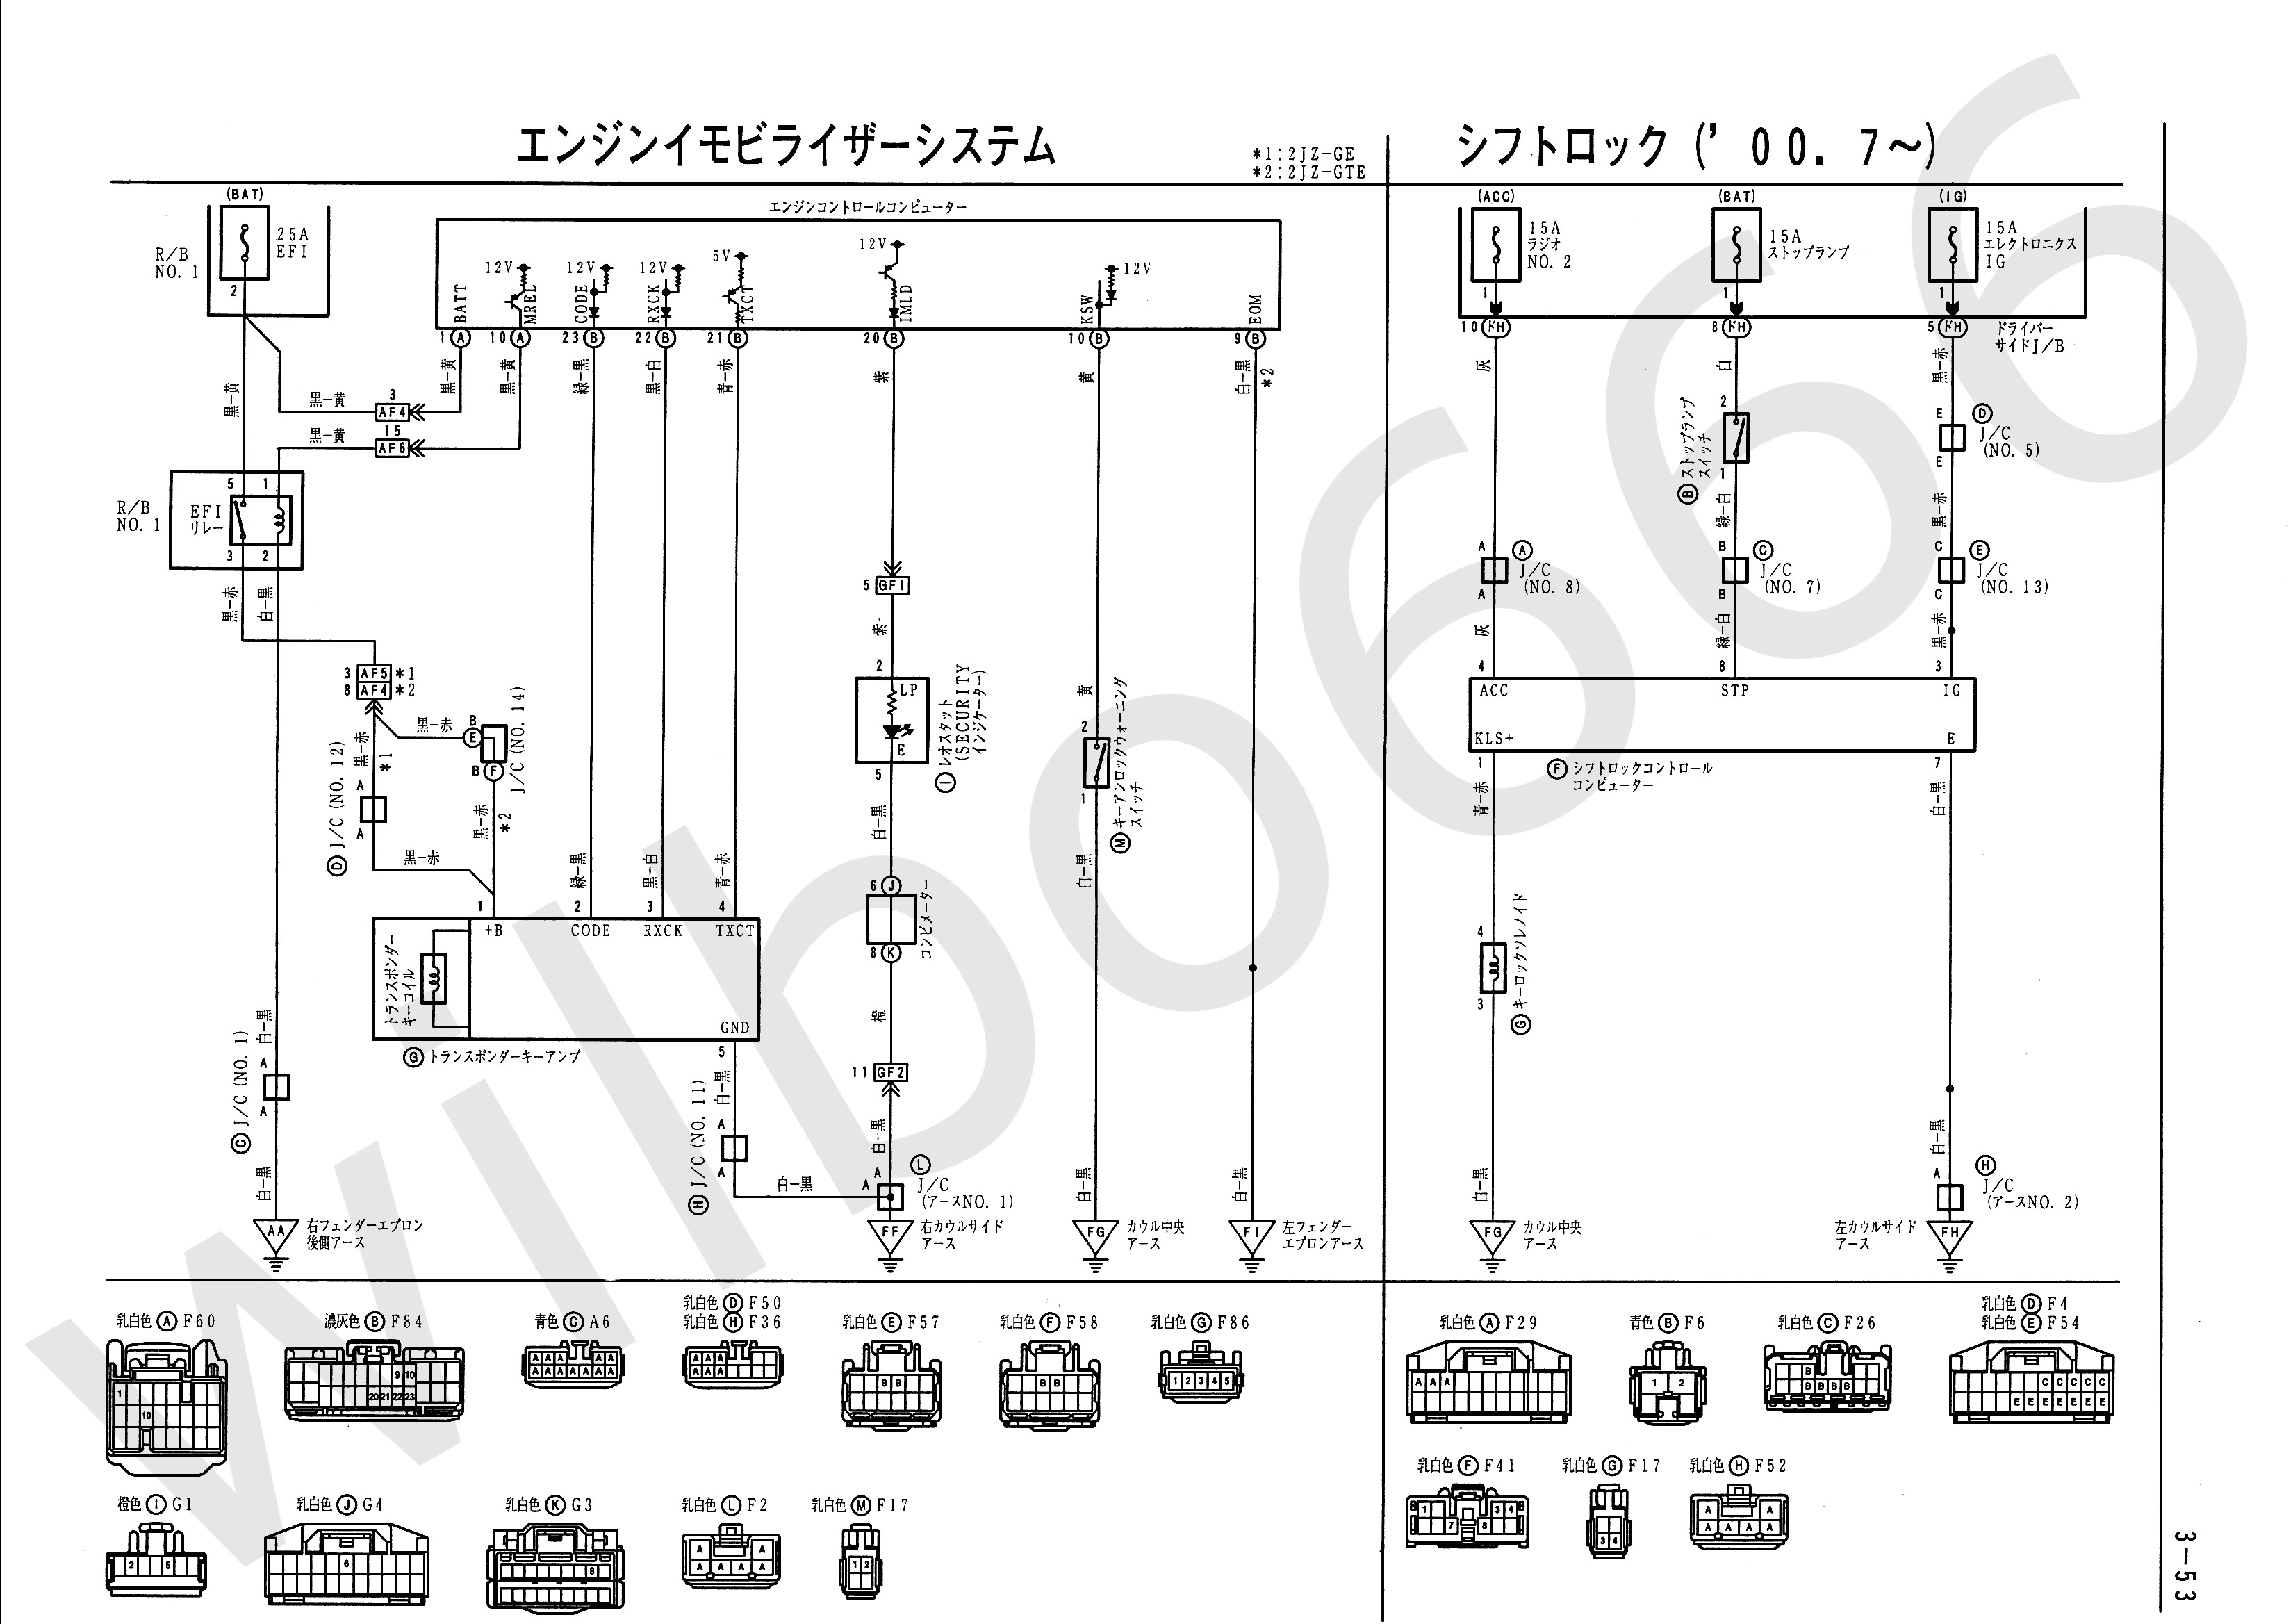 Power Steering Schematic Diagram Wilbo666 2jz Gte Vvti Jzs161 Aristo Engine Wiring